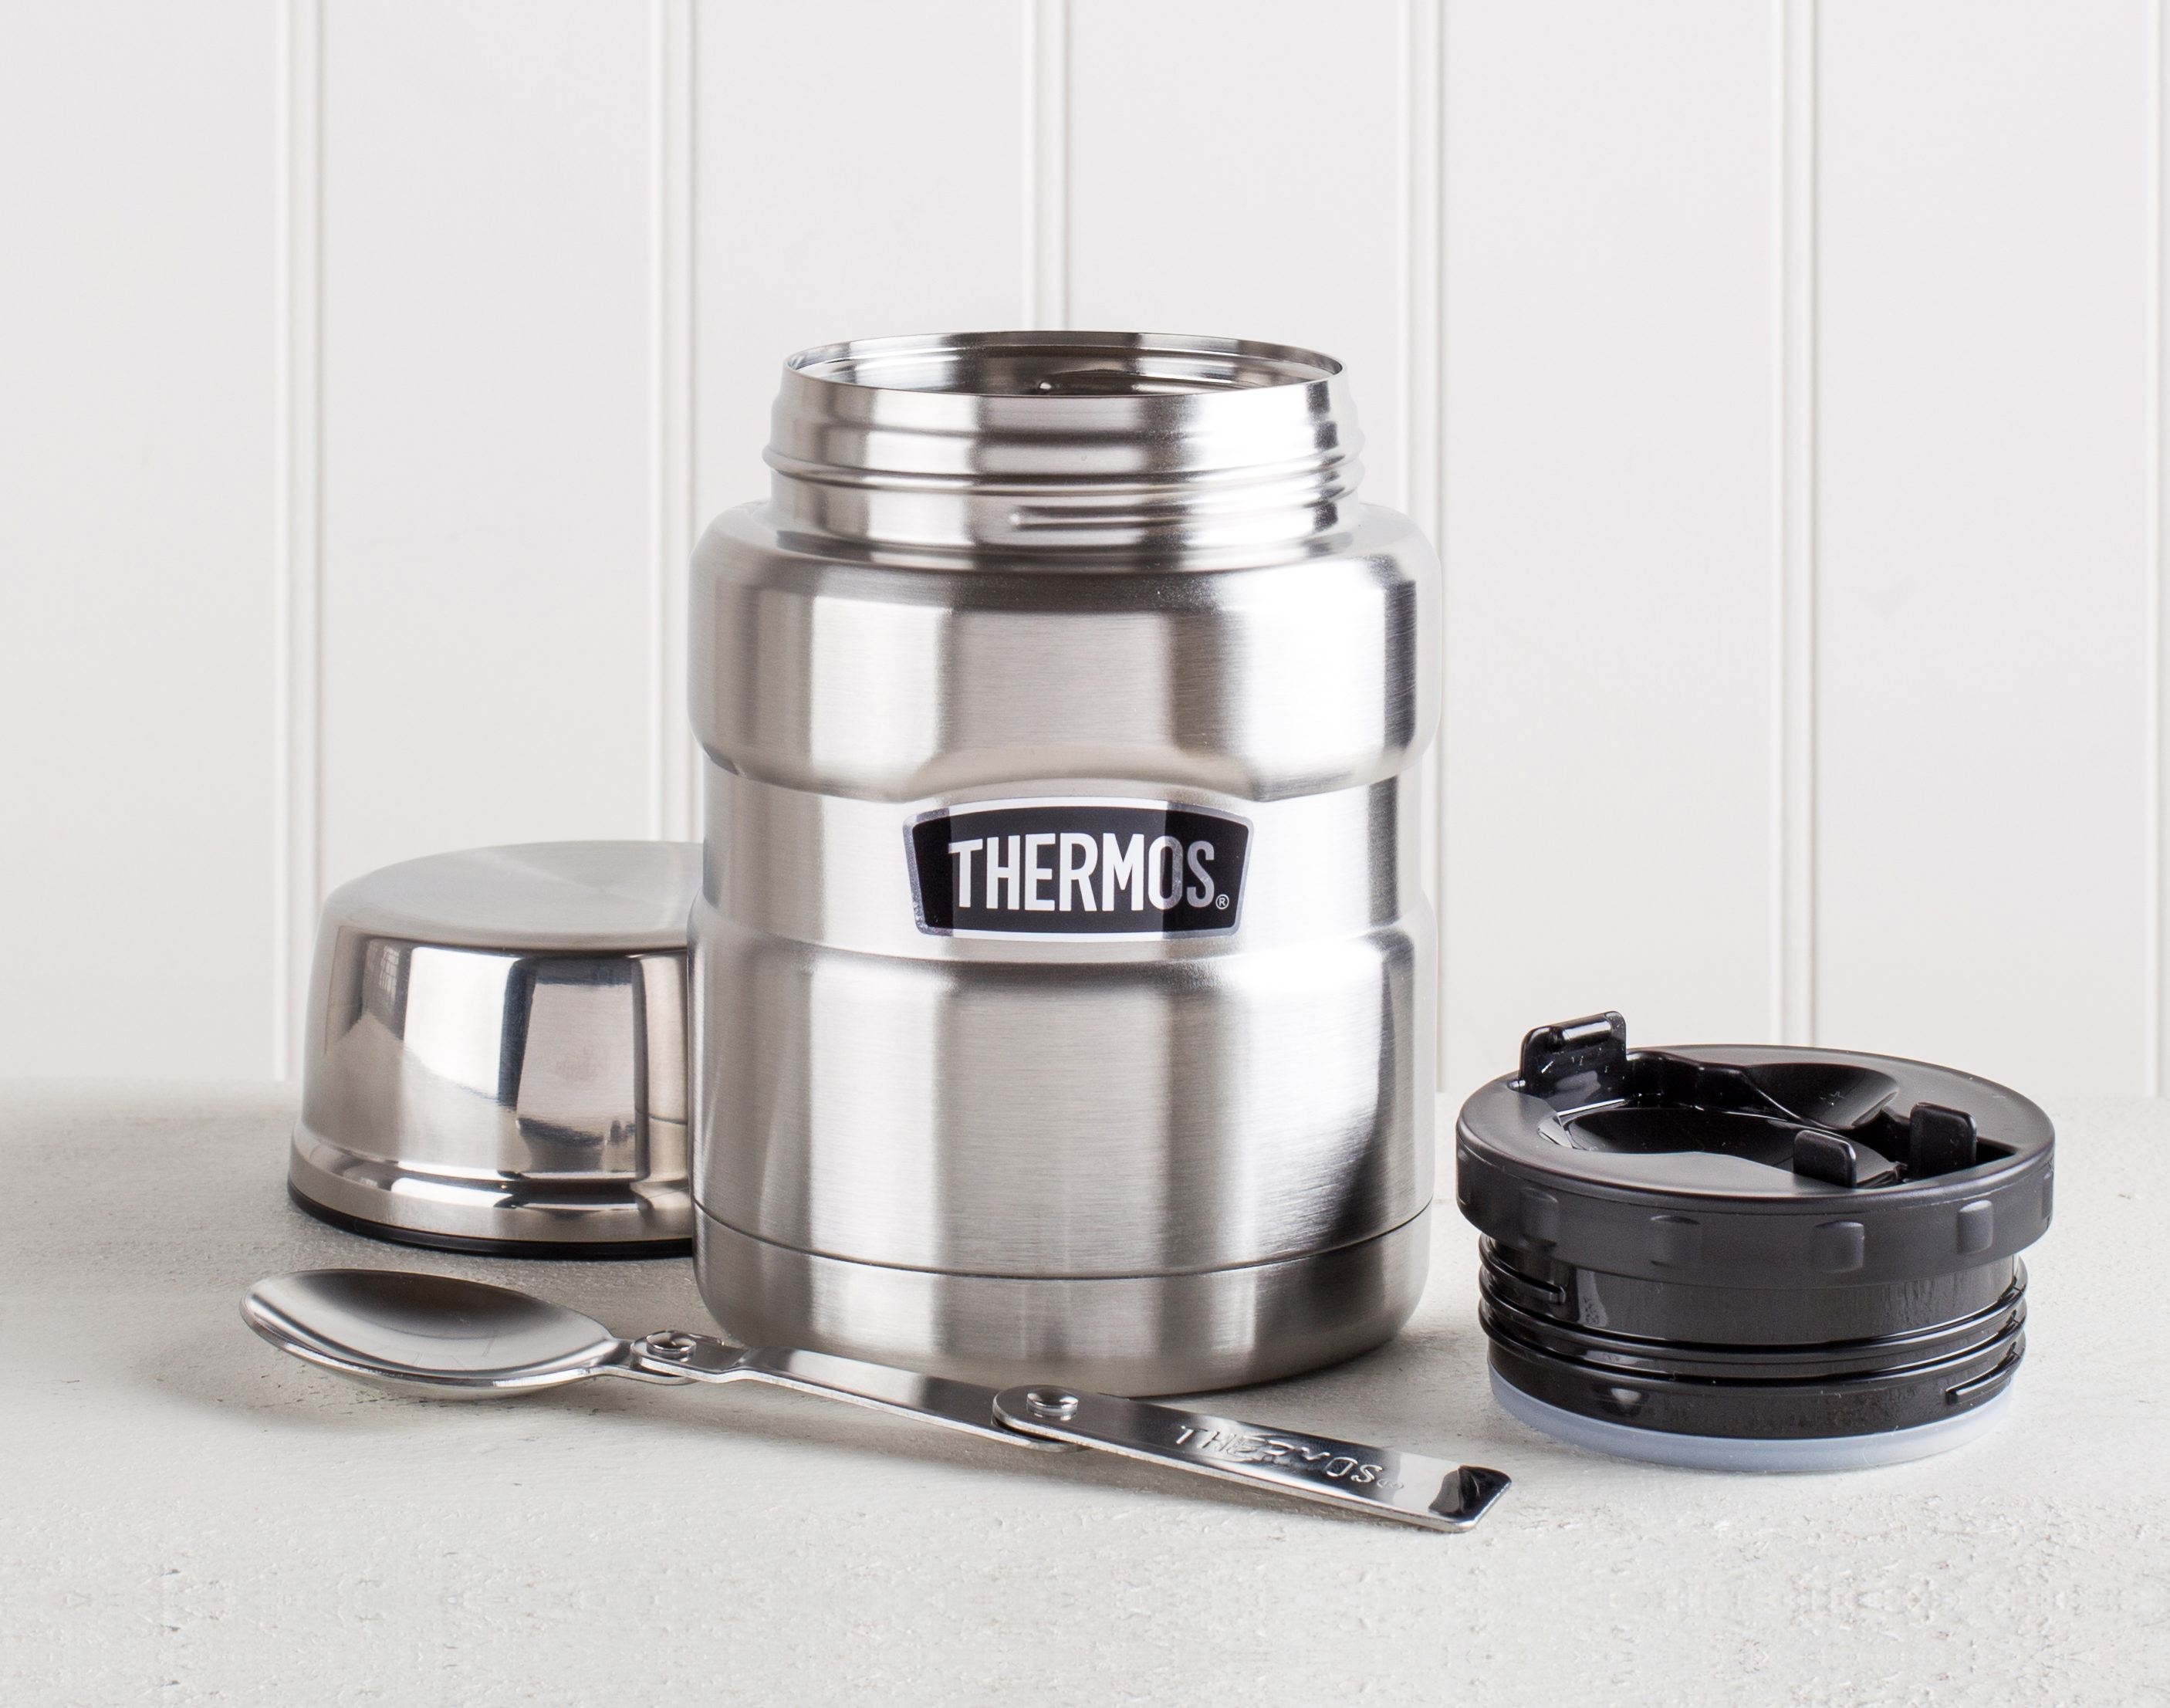 thermos container with built in spoon for back-to-school